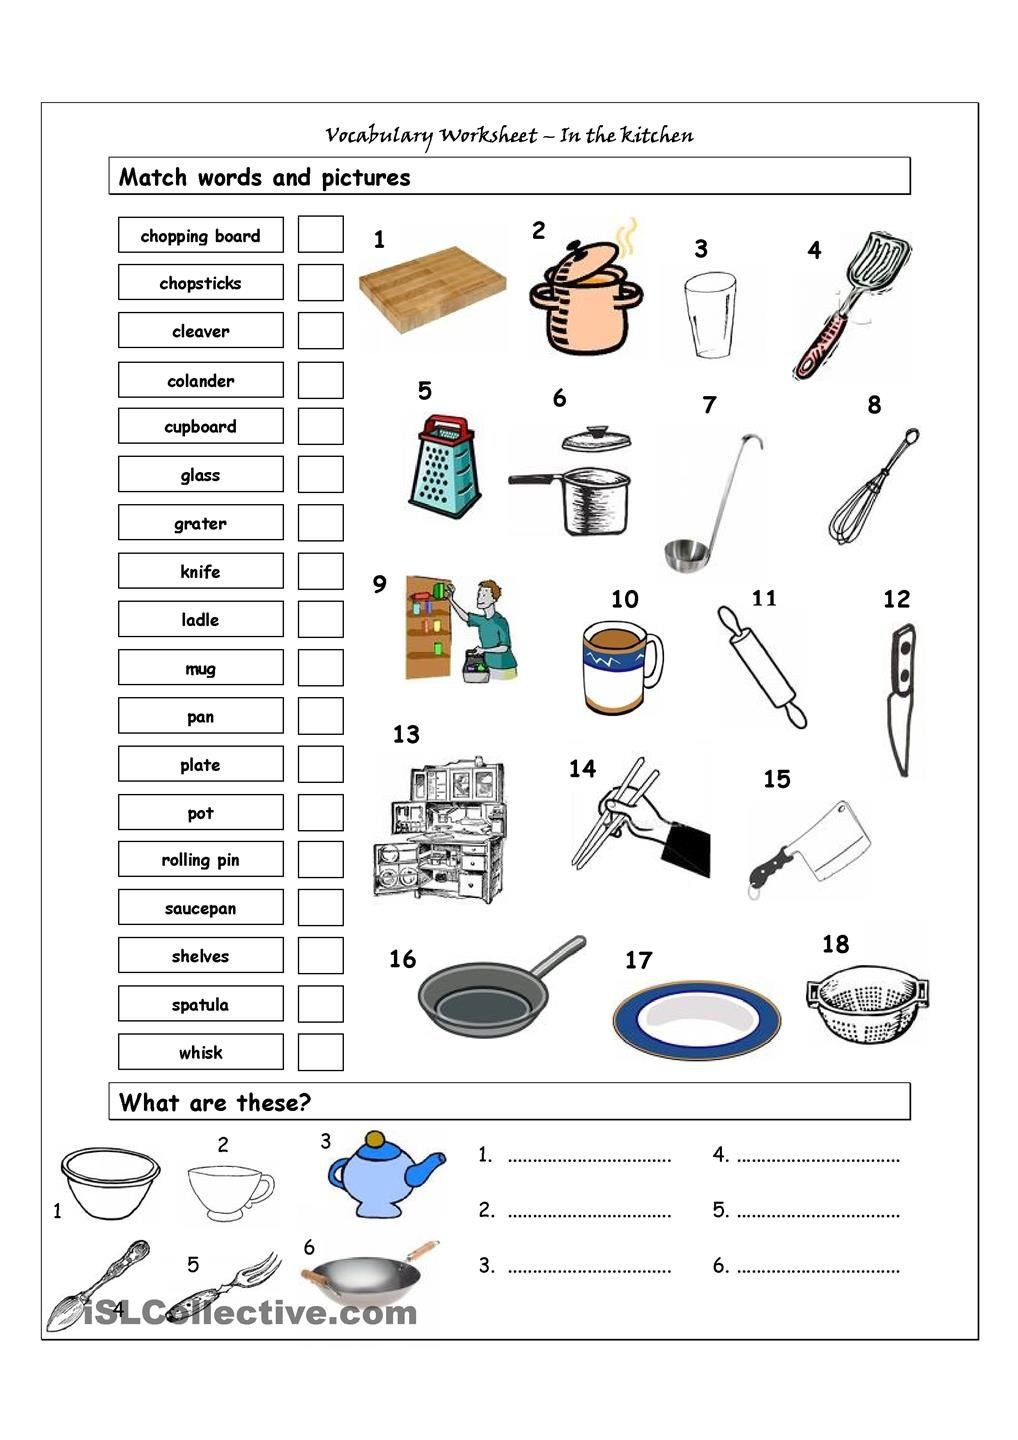 Middle School Life Skills Worksheets Vocabulary Matching Worksheet In the Kitchen